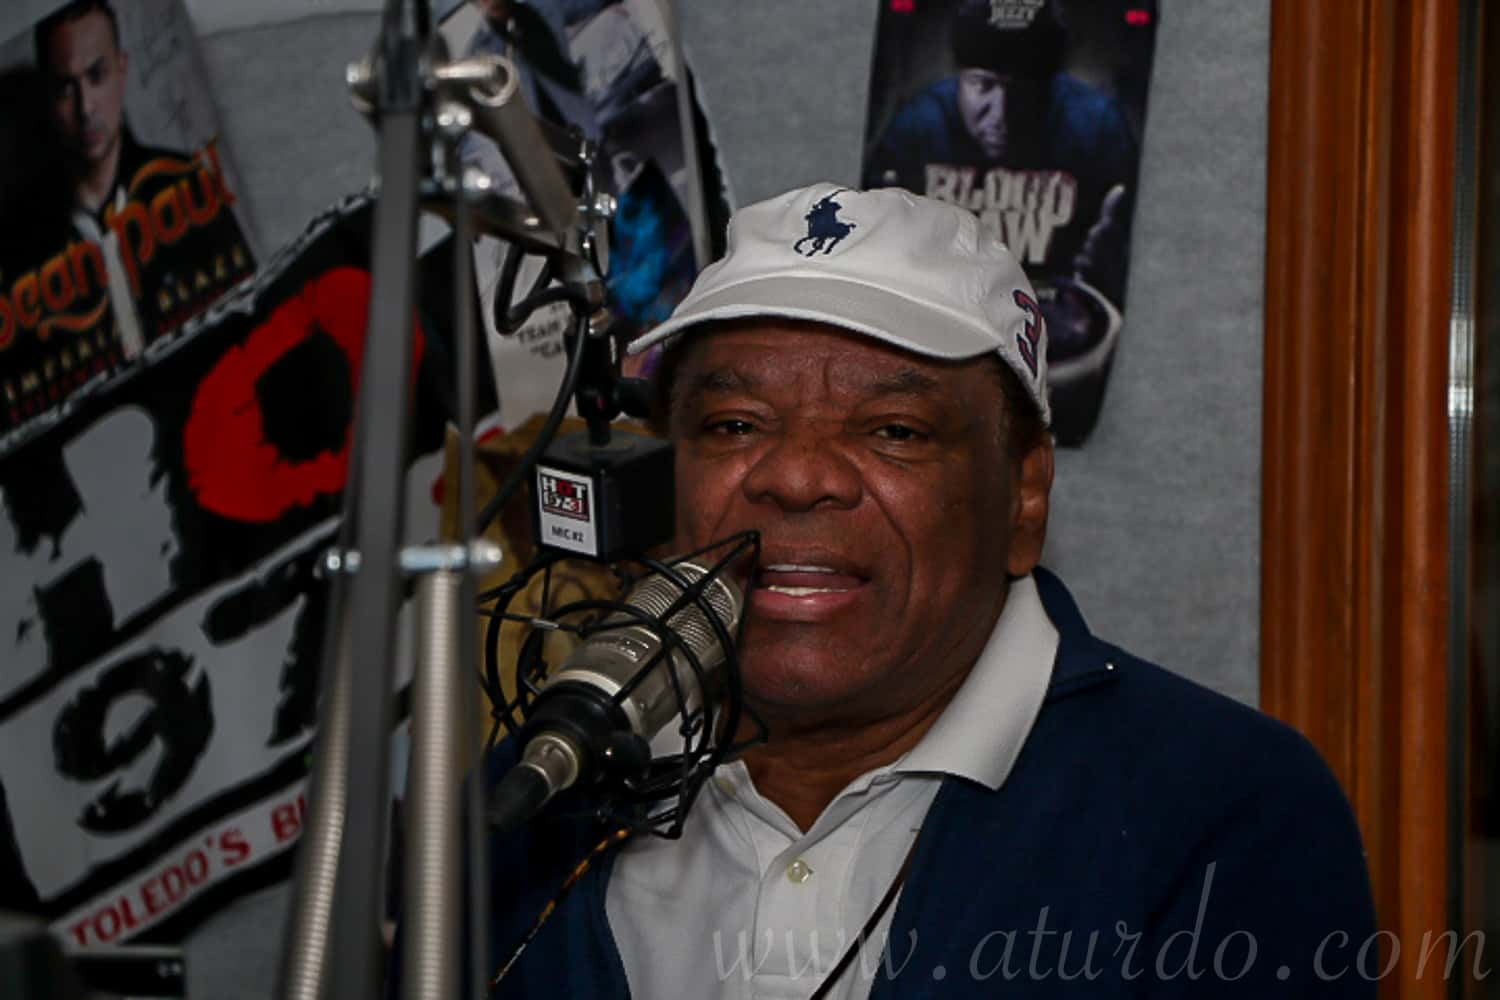 John Witherspoon in the Hot Studio